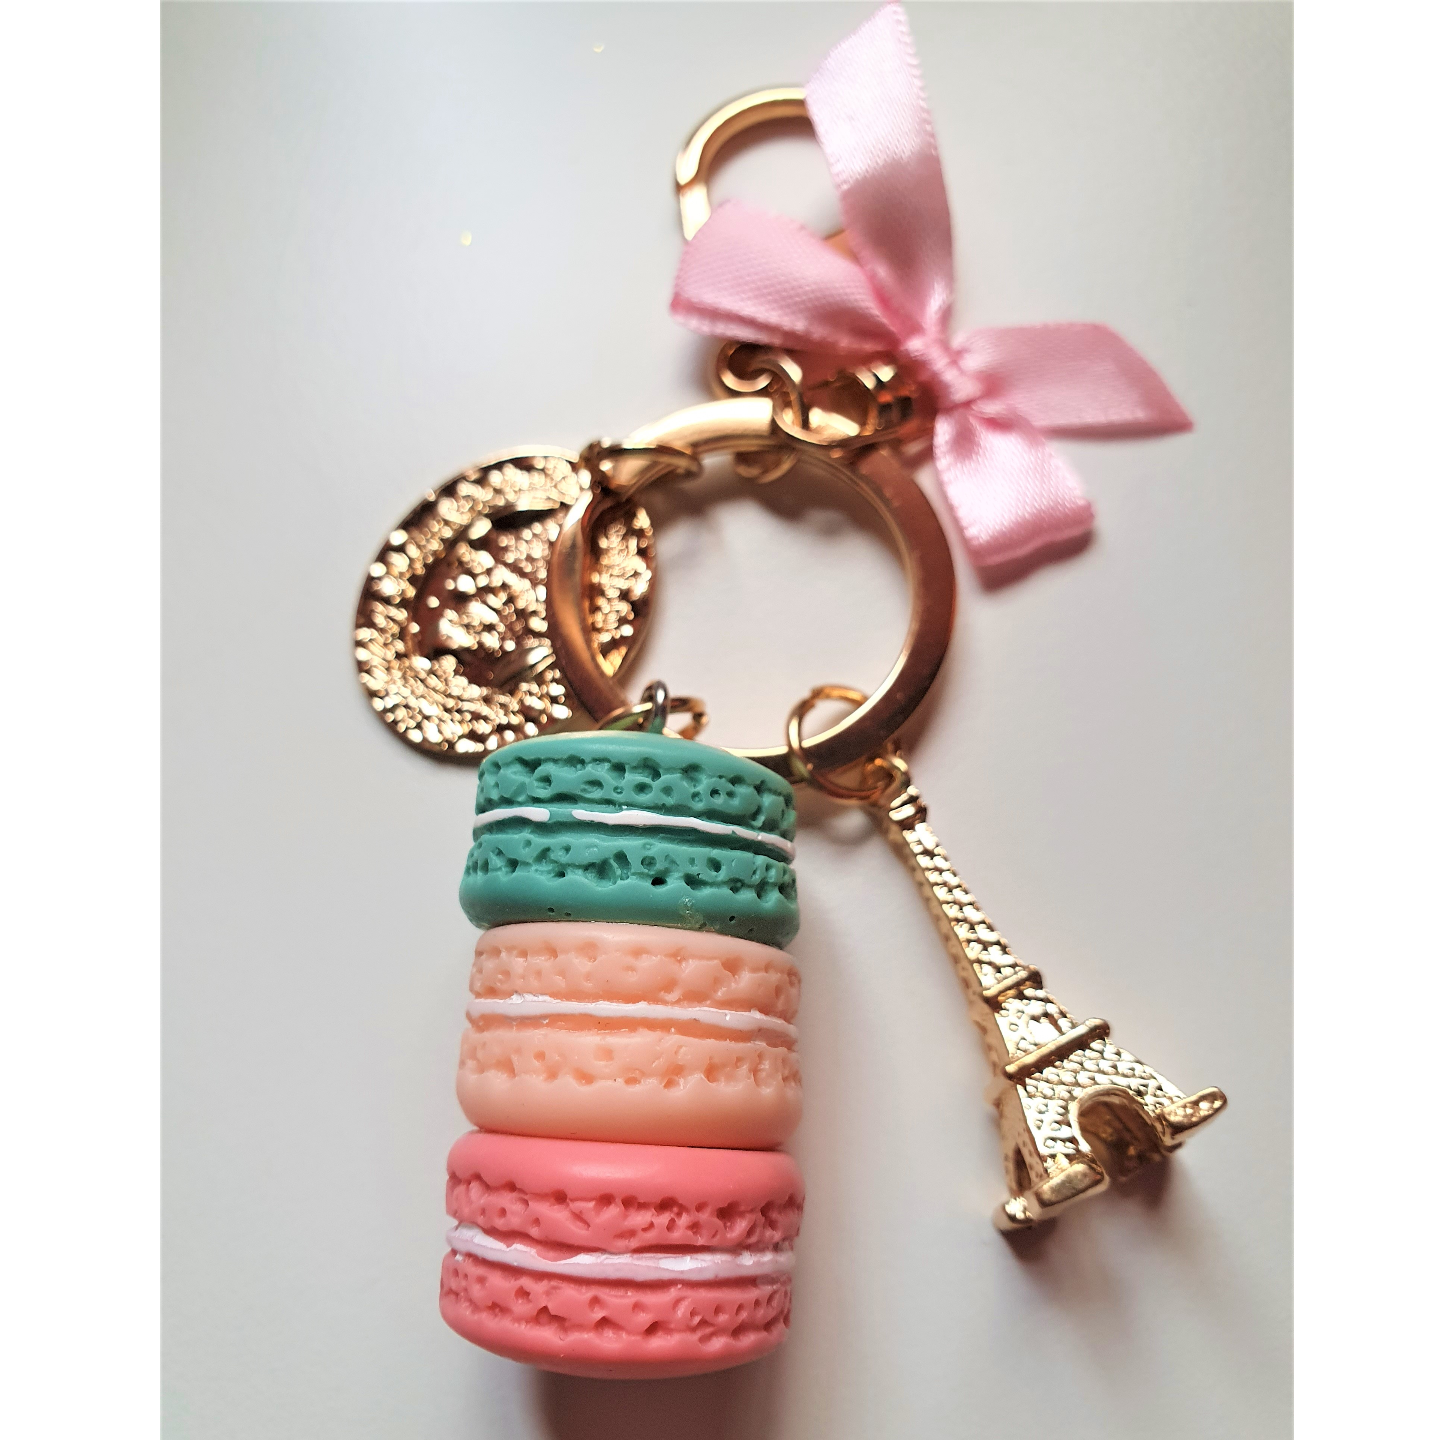 Set of Charm Bracelet with Teddy Bear design & Macaron Bag Charm and Key Chain